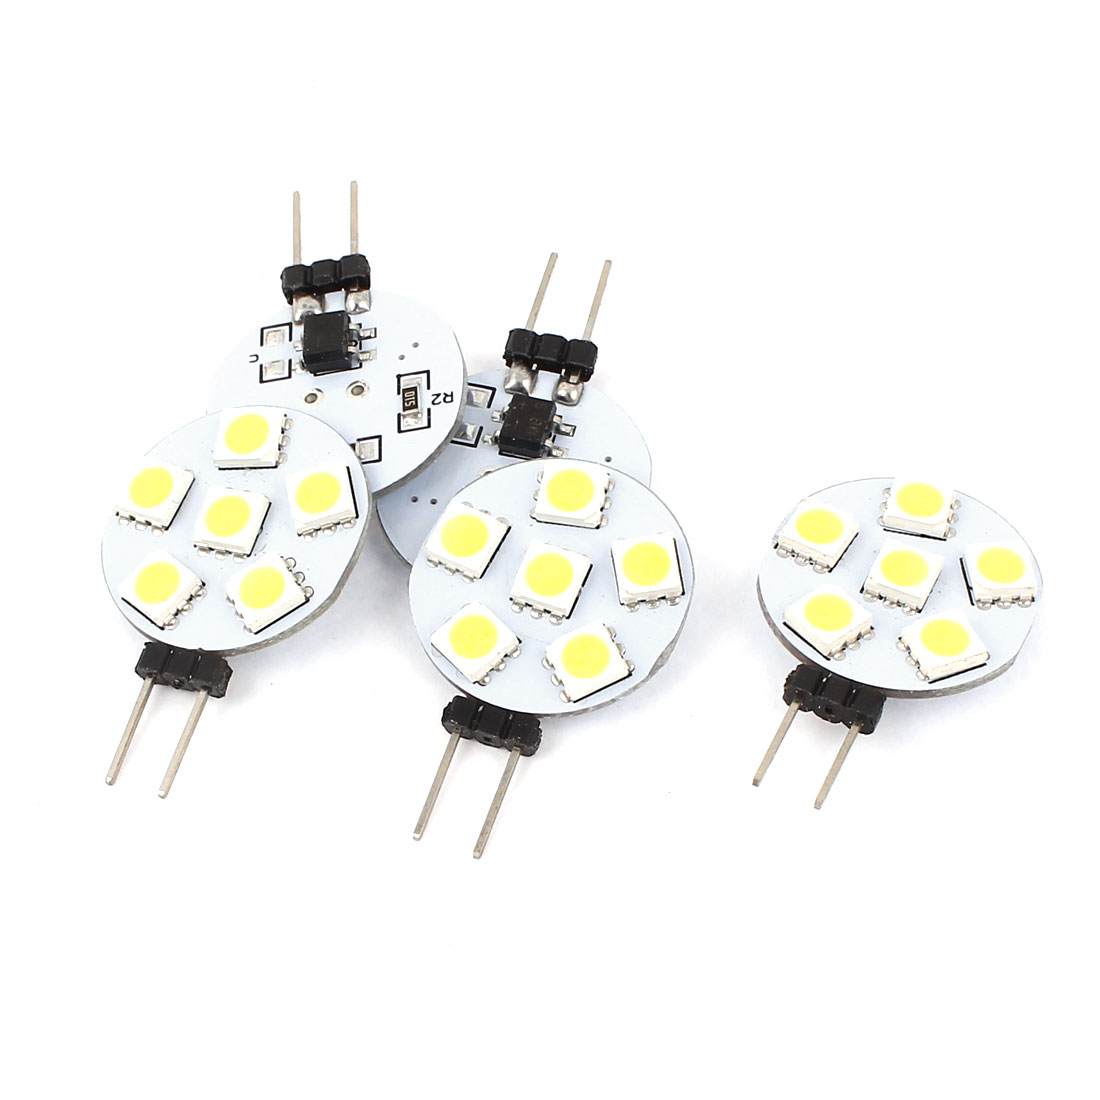 5 Pcs G4 5050 SMD 6 LED Cabinet Marine Boat Light Bulb Lamp White DC12V